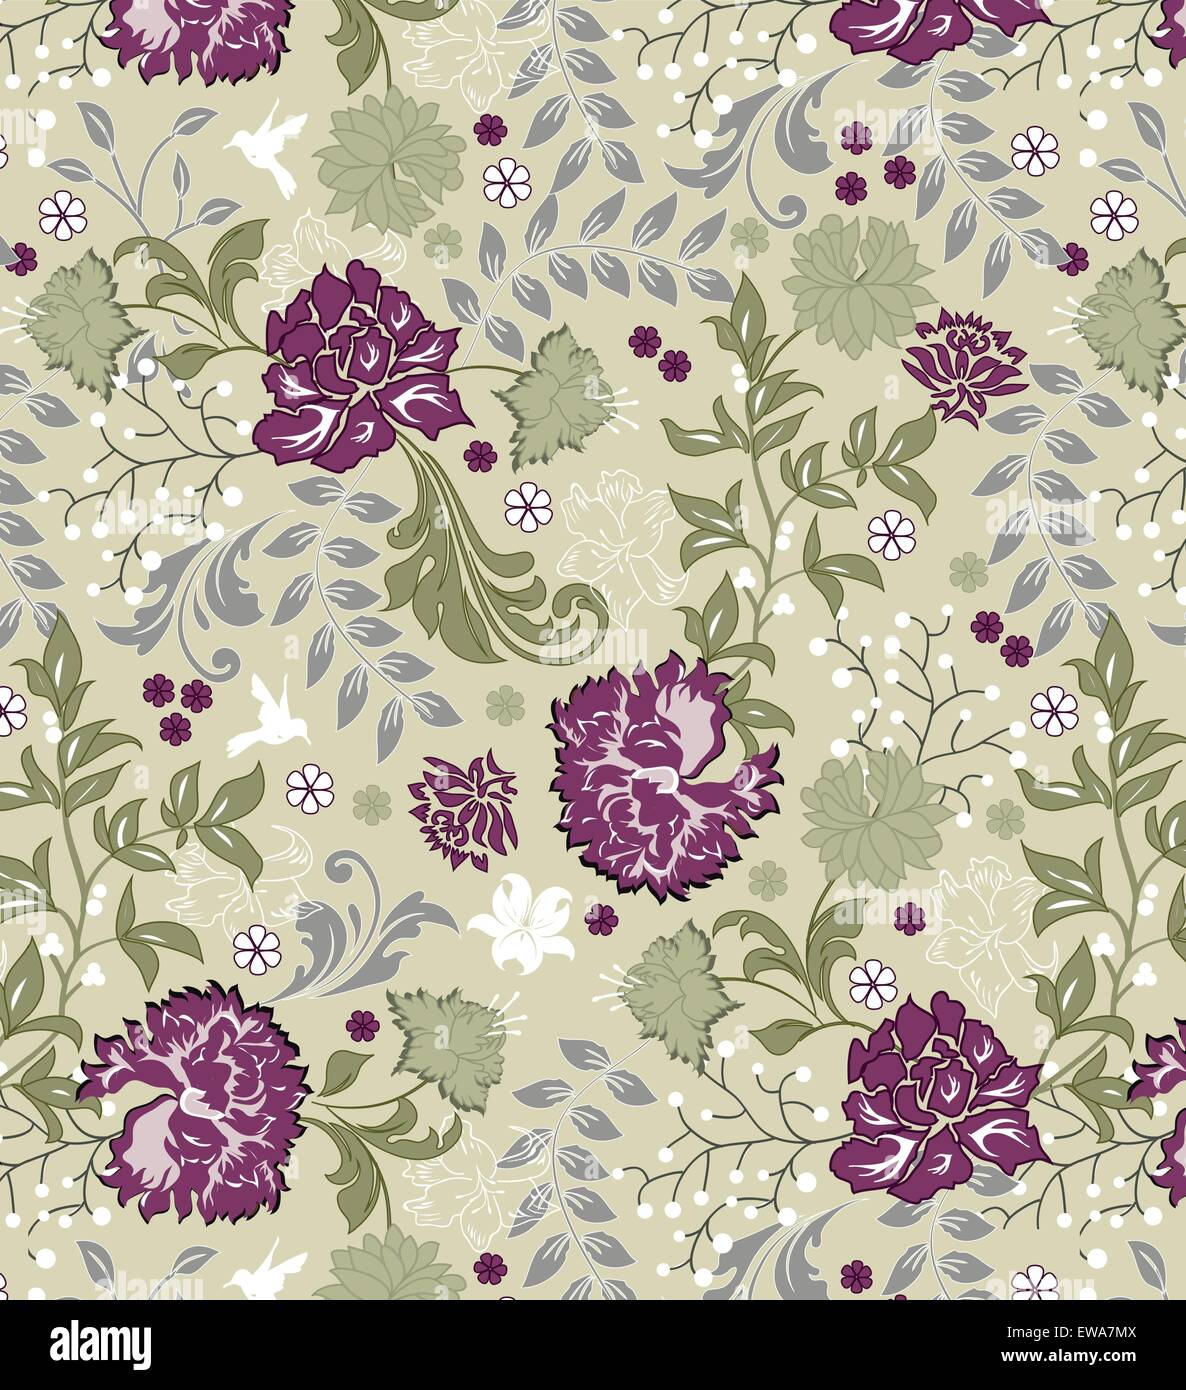 Vintage background with ornate elegant retro abstract floral design, multi-colored flowers and leaves on light green. - Stock Image